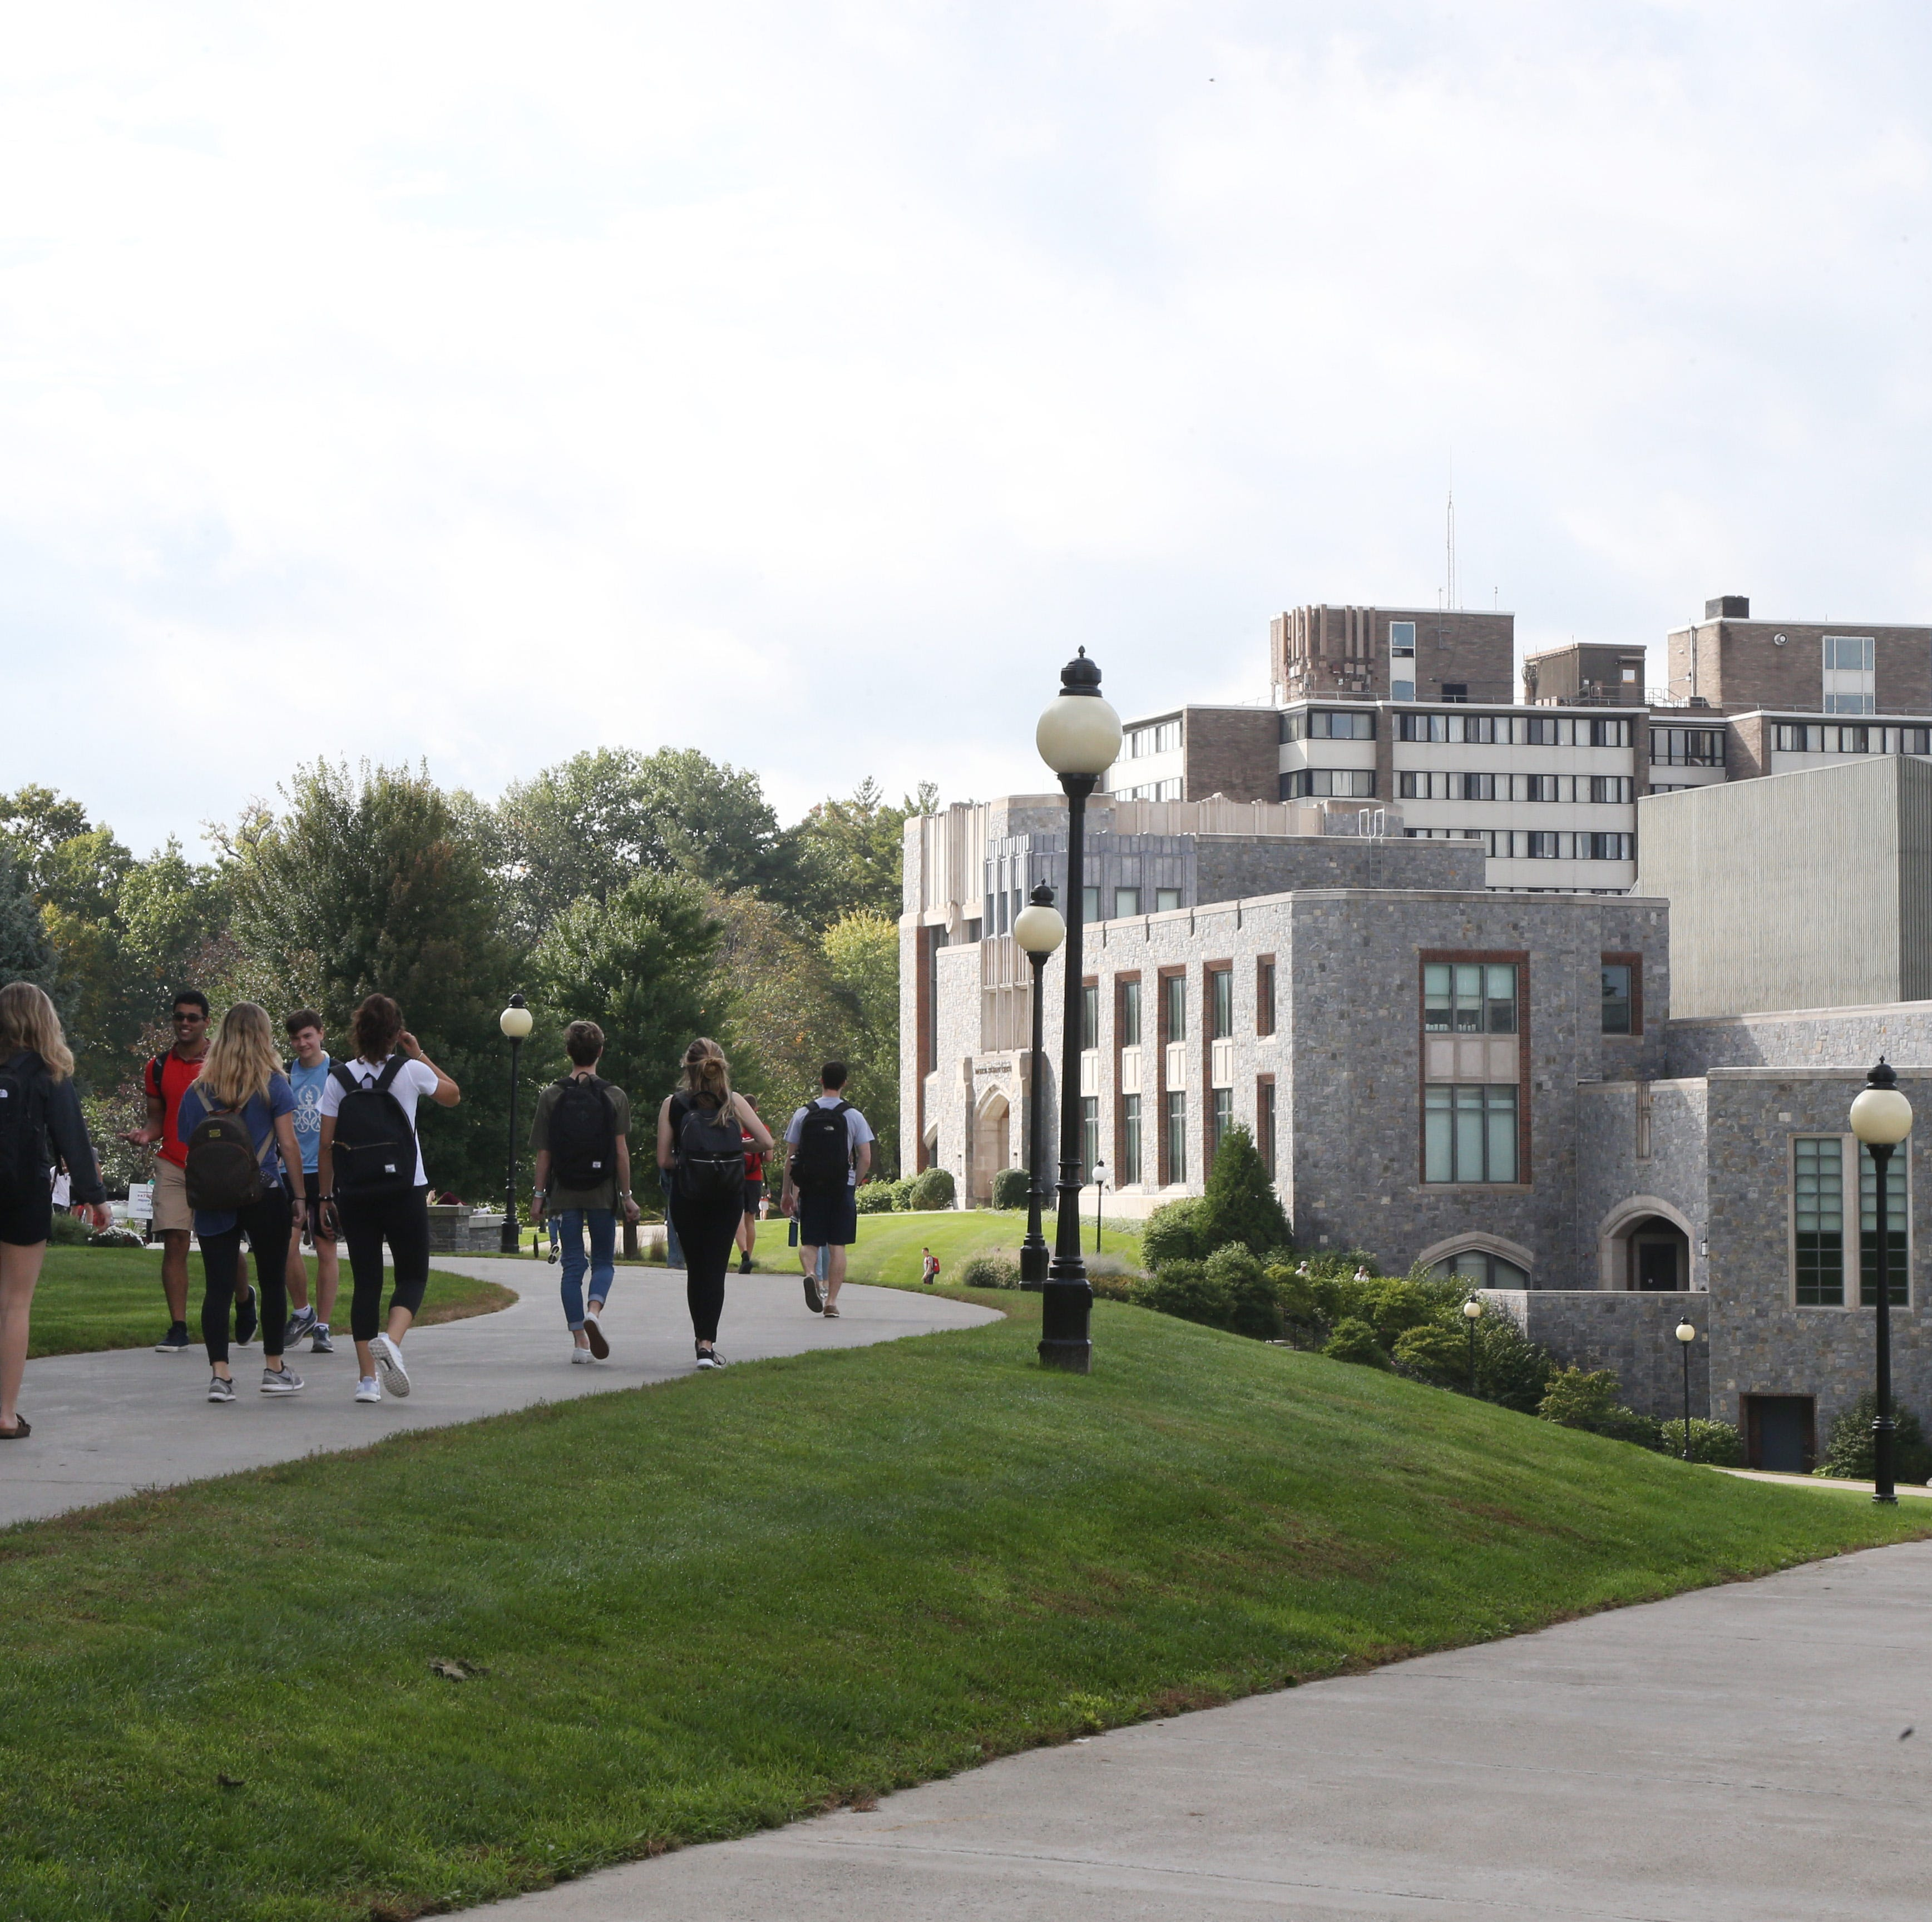 Students walk passed the Murray Student Center  at Marist College on October 10, 2018.